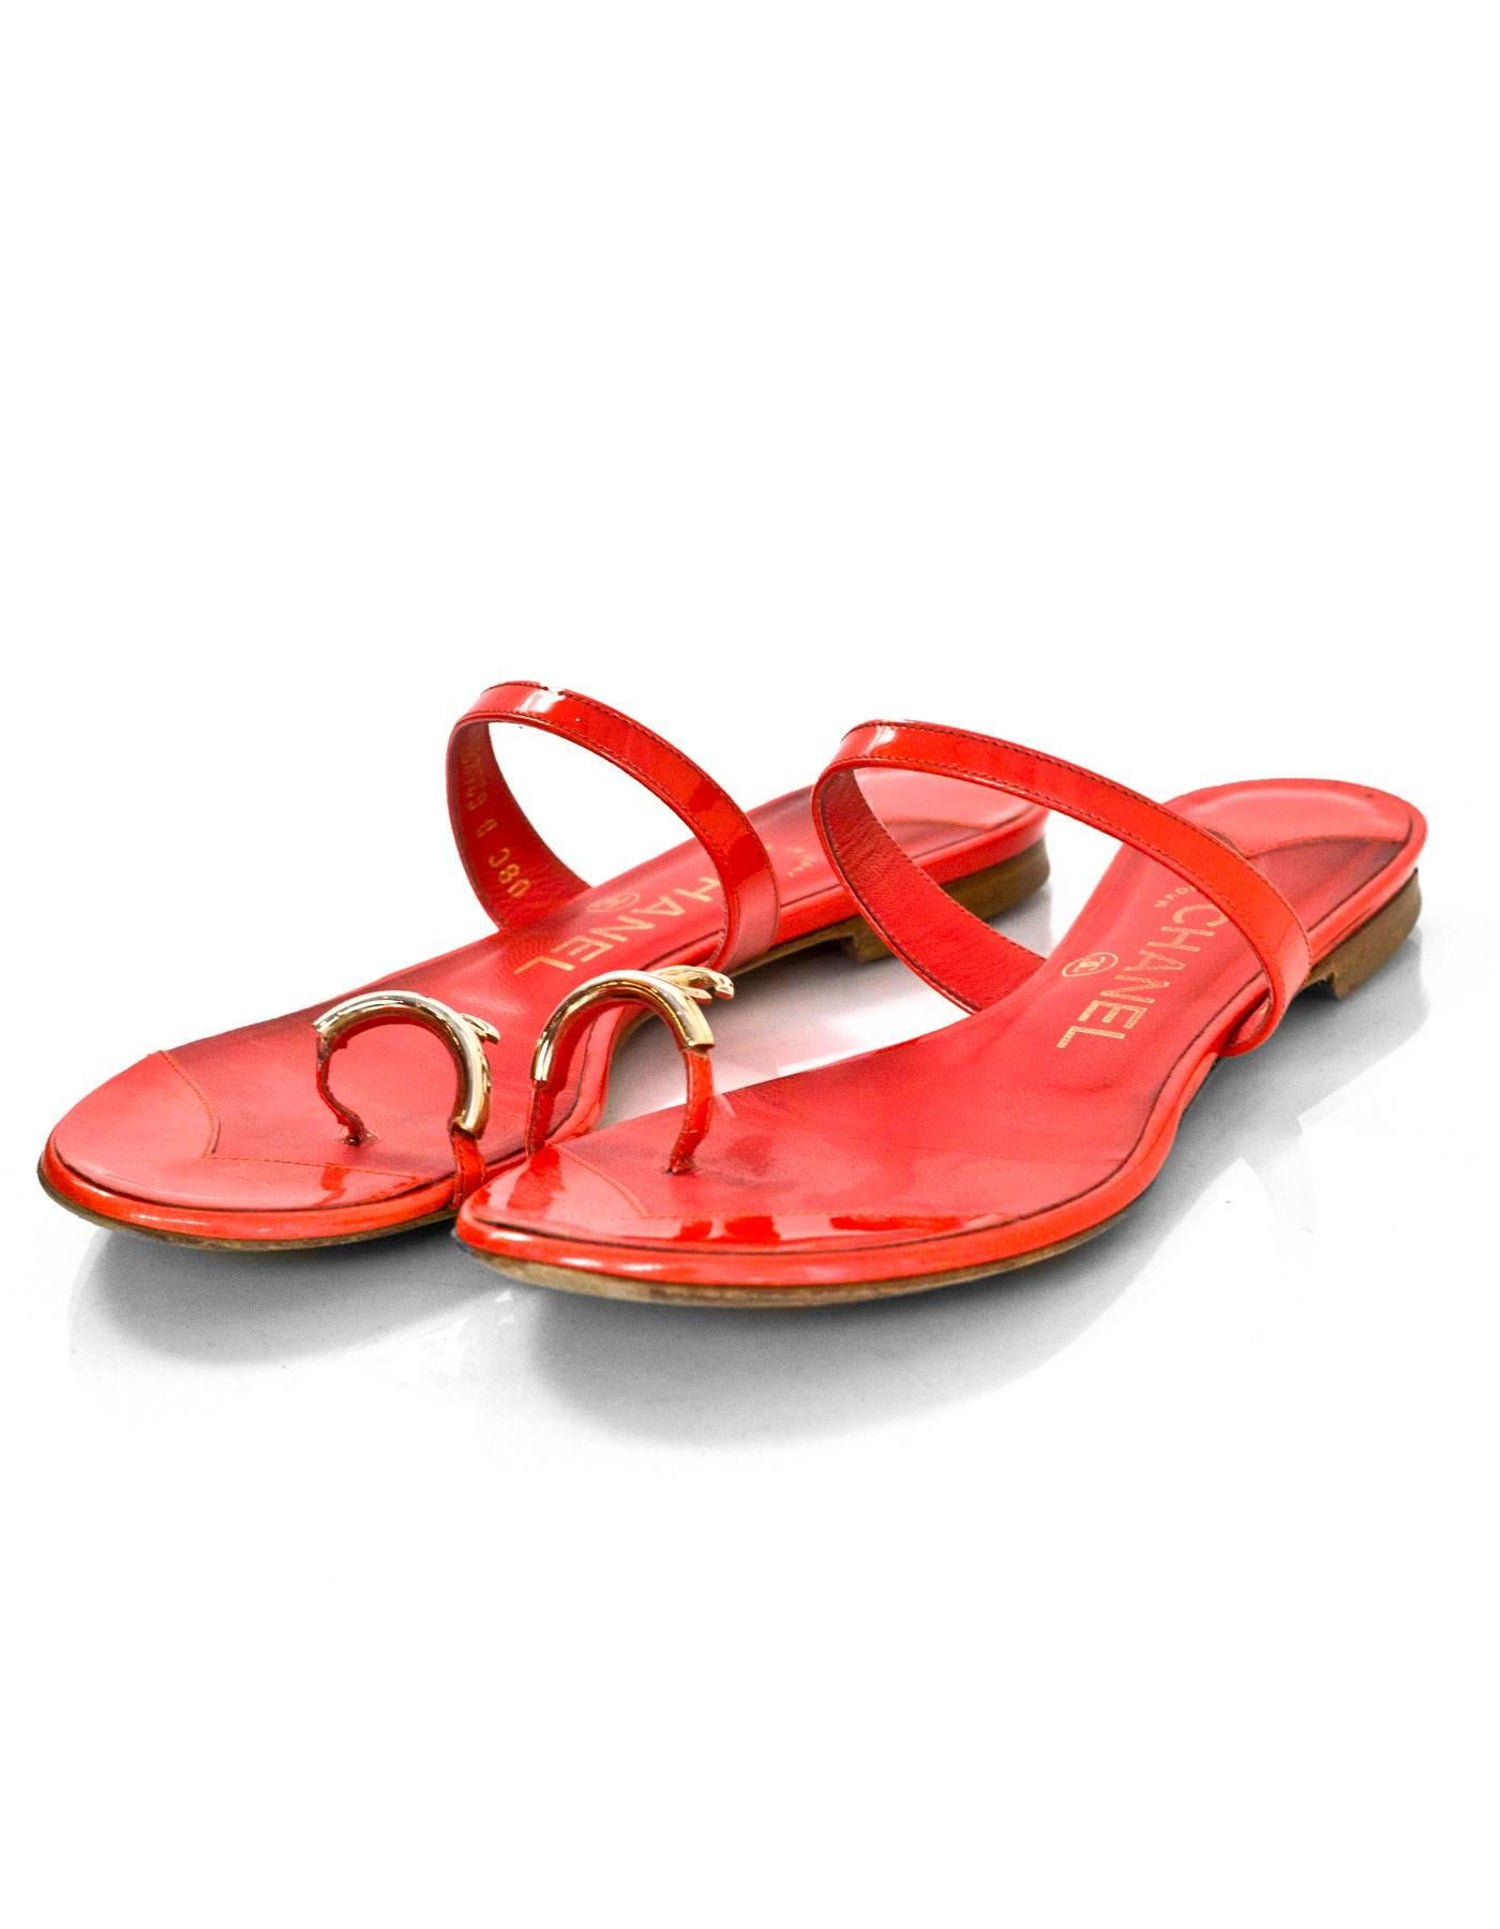 0e14c3694144 Chanel Coral Patent Leather CC Toe Sandals Sz 36 For Sale at 1stdibs